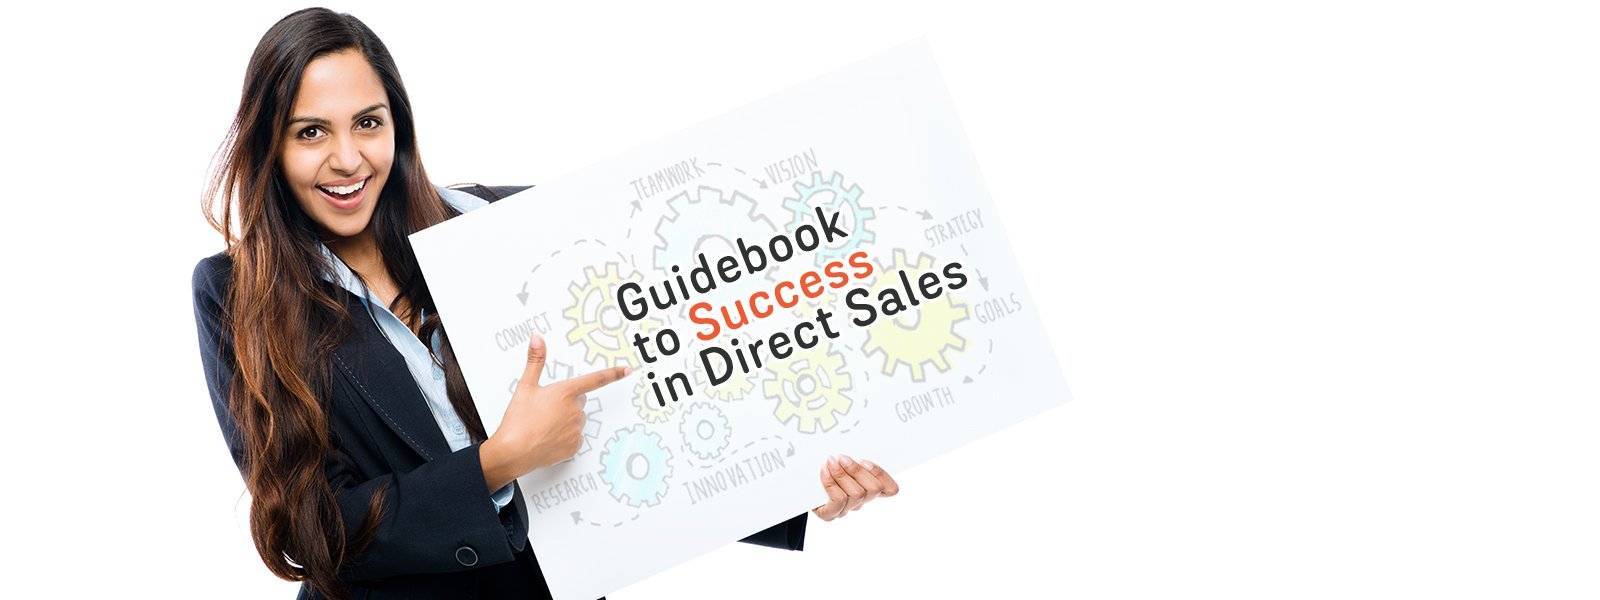 Your Guidebook to Success in Direct Sales